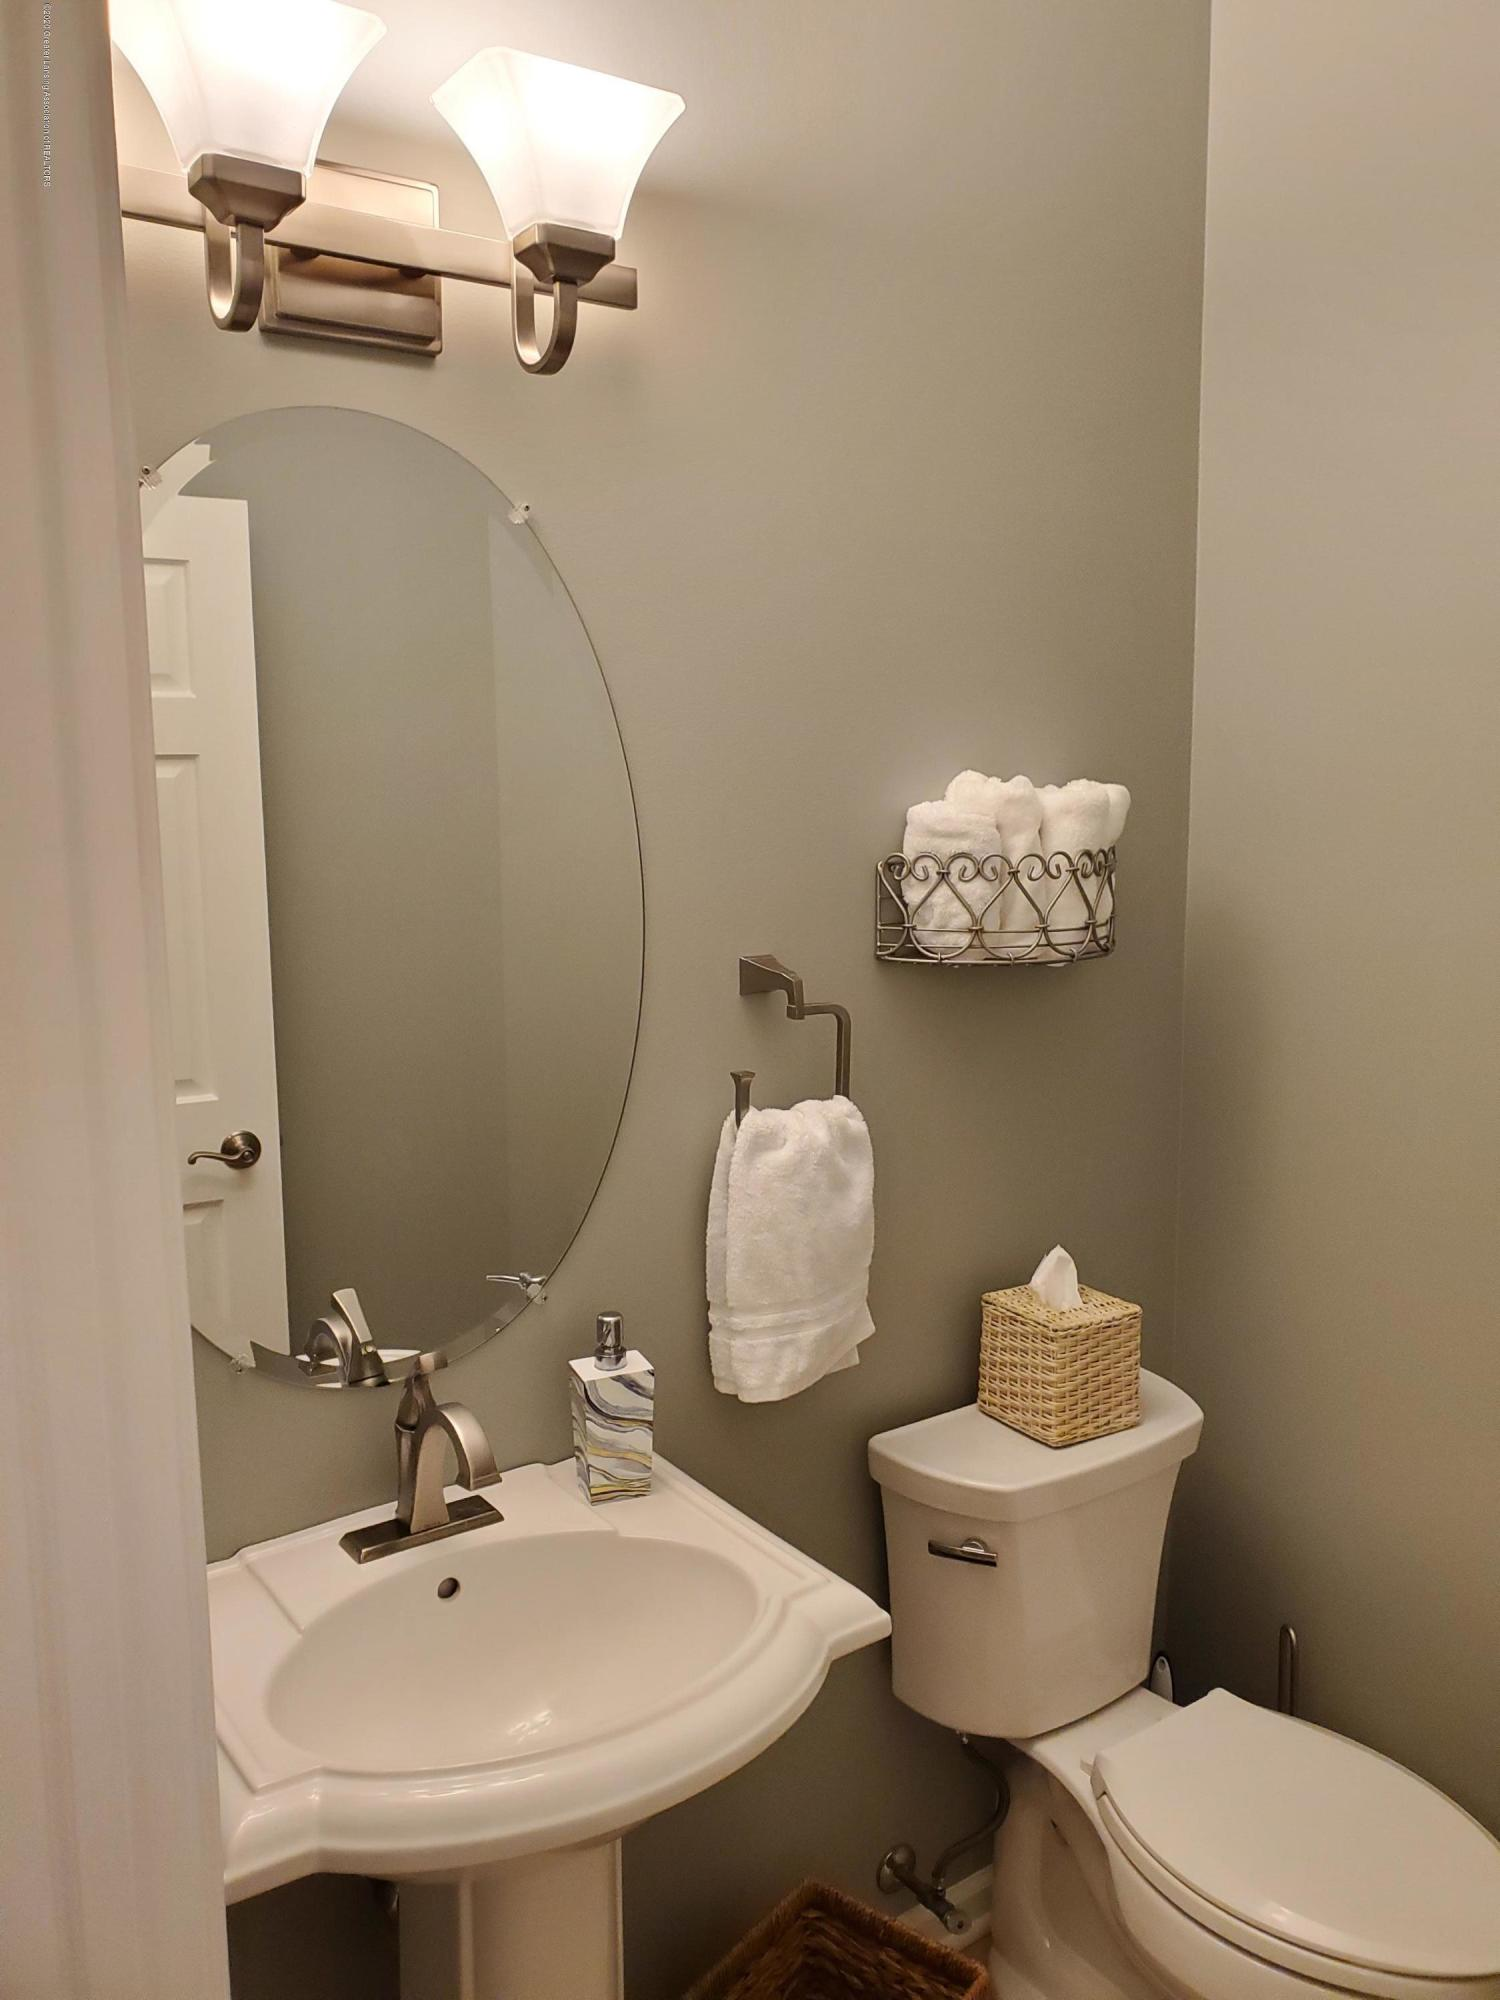 558 N Wheaton Rd - Powder Room - 21